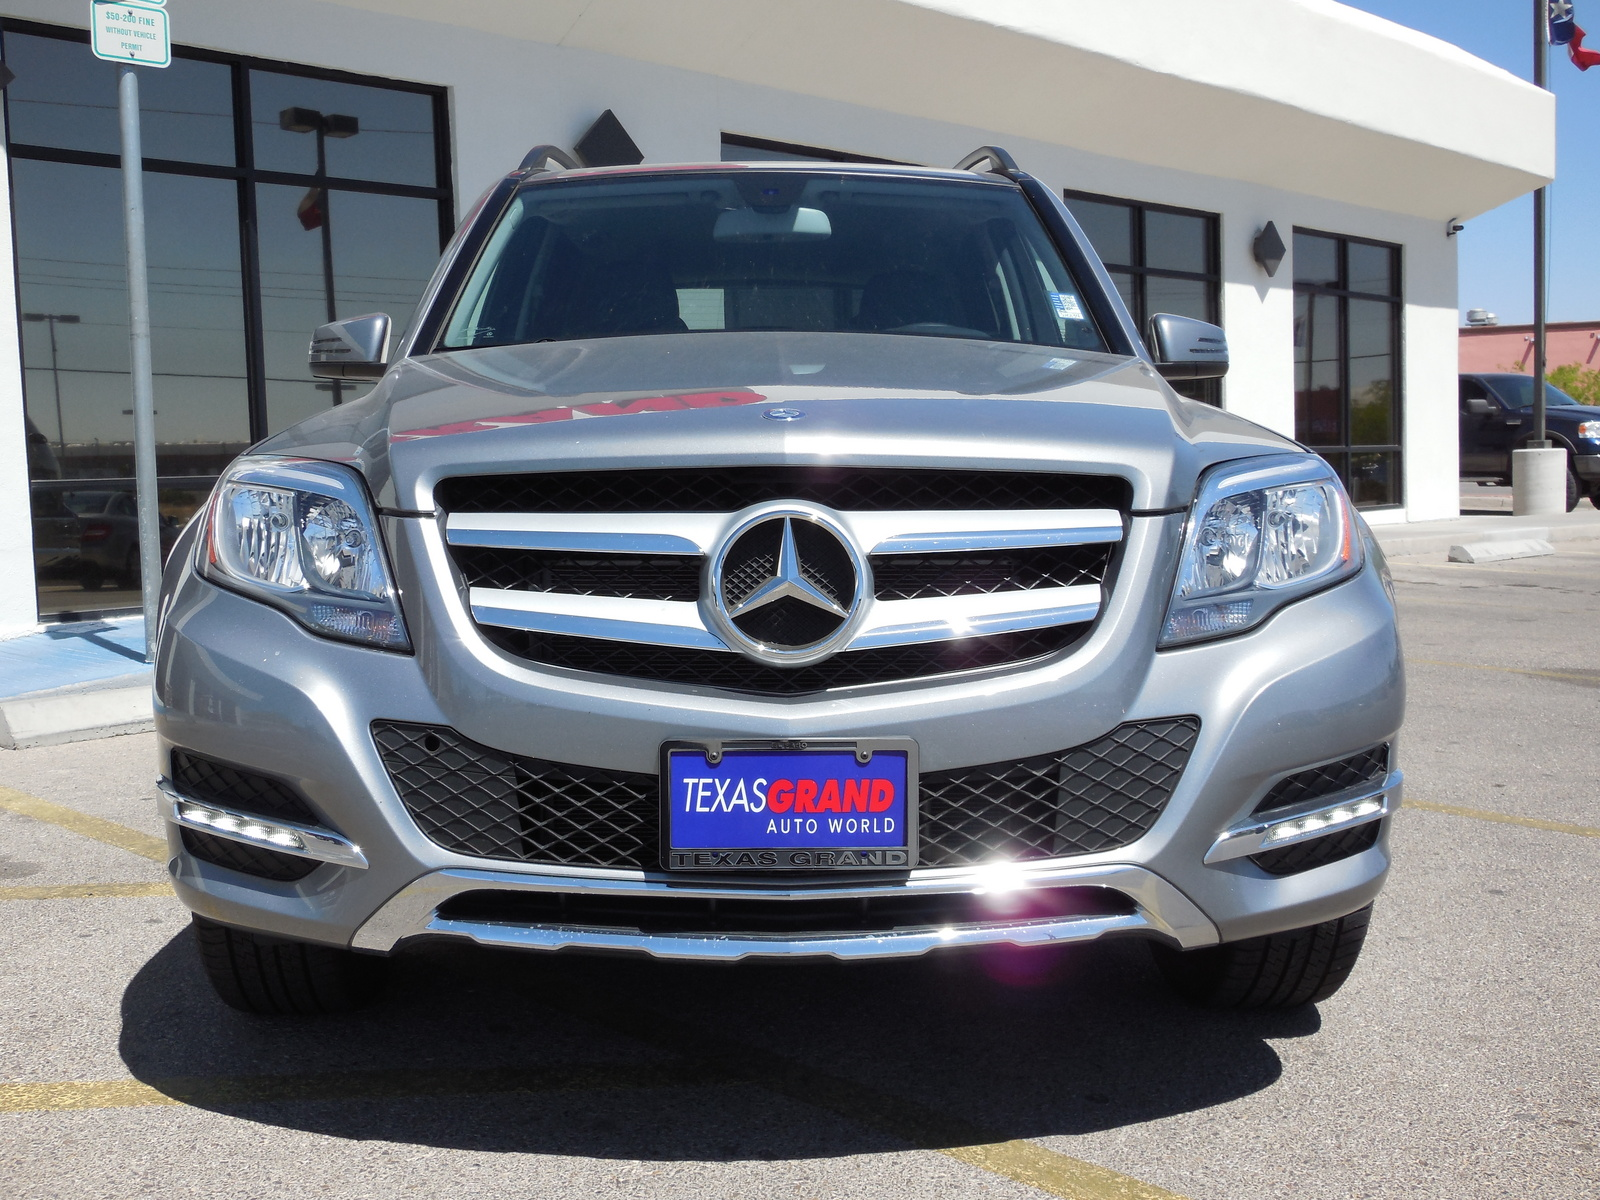 2013 mercedes benz glk class pictures cargurus for Mercedes benz glk350 price 2013